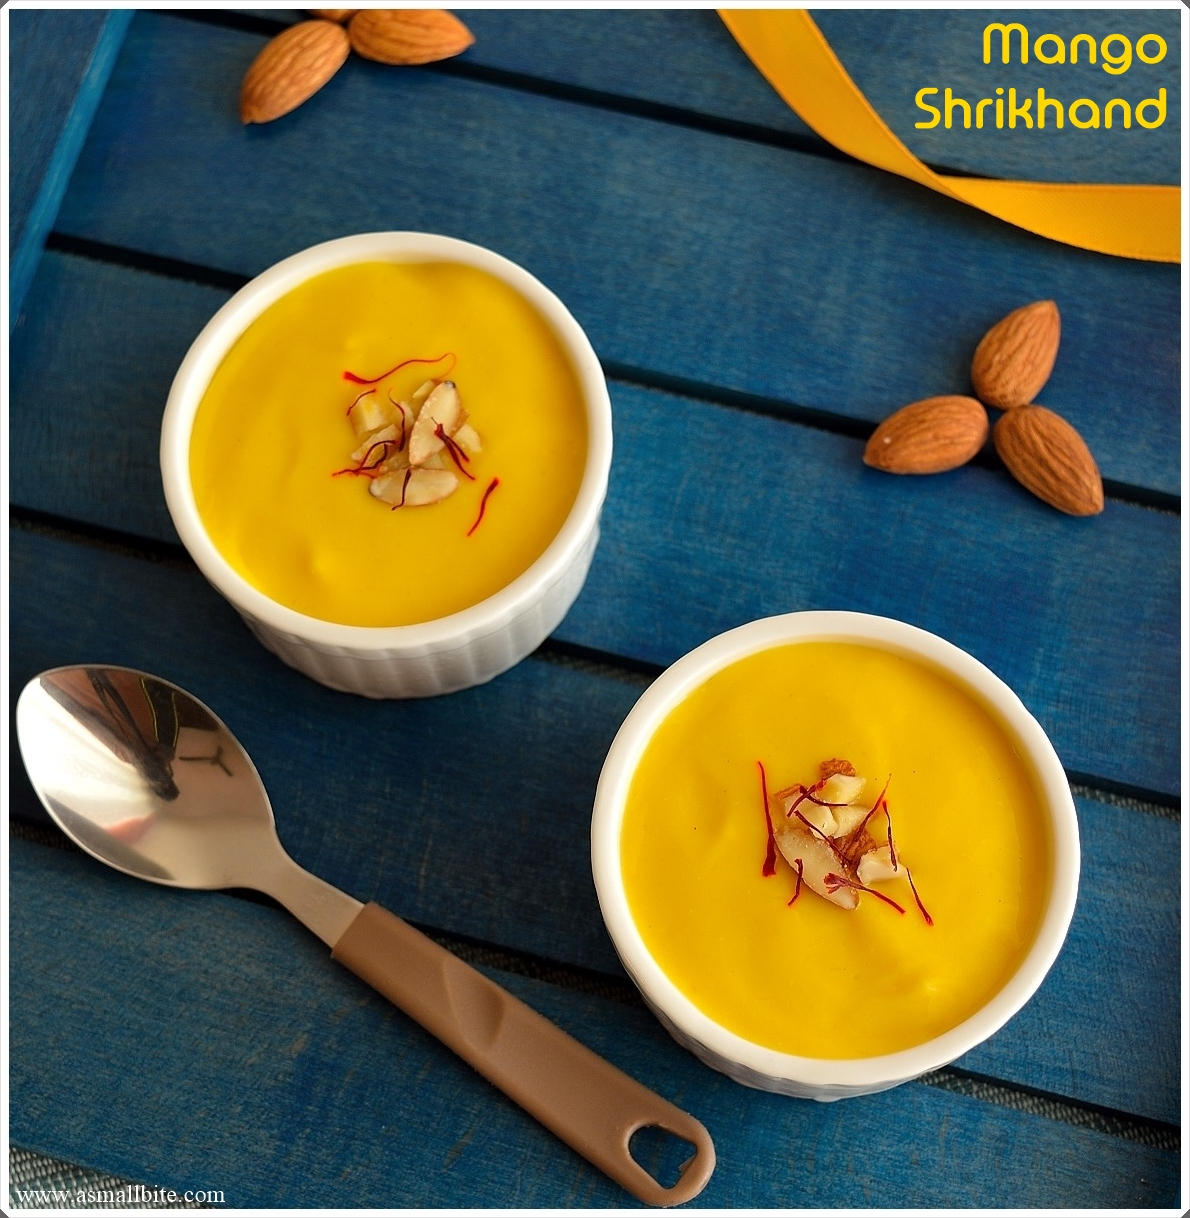 Mango Shrikhand Recipe 9